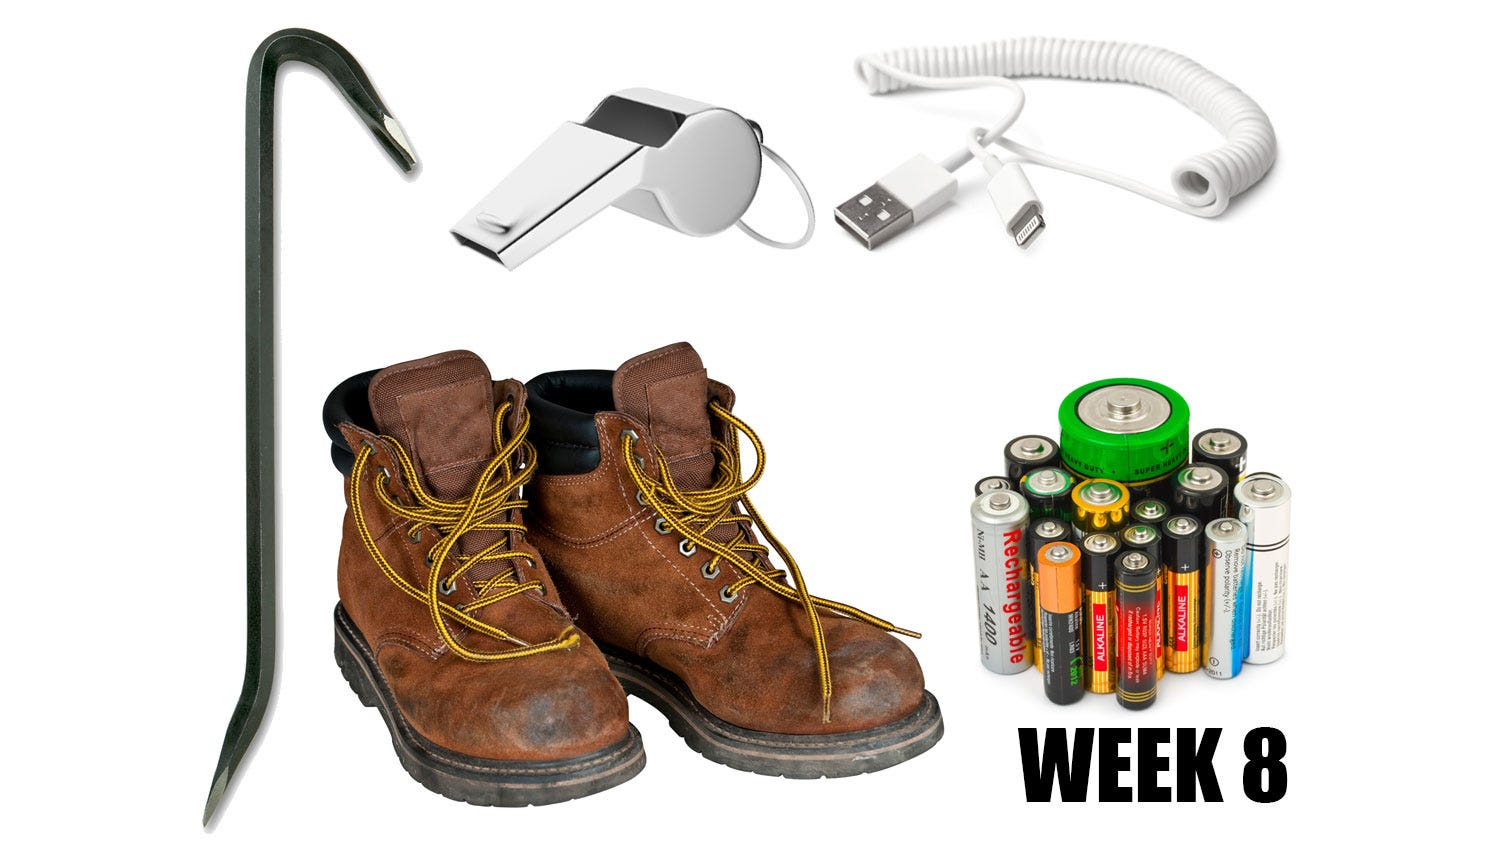 Week 8: Buy a metal whistle, not a plastic one